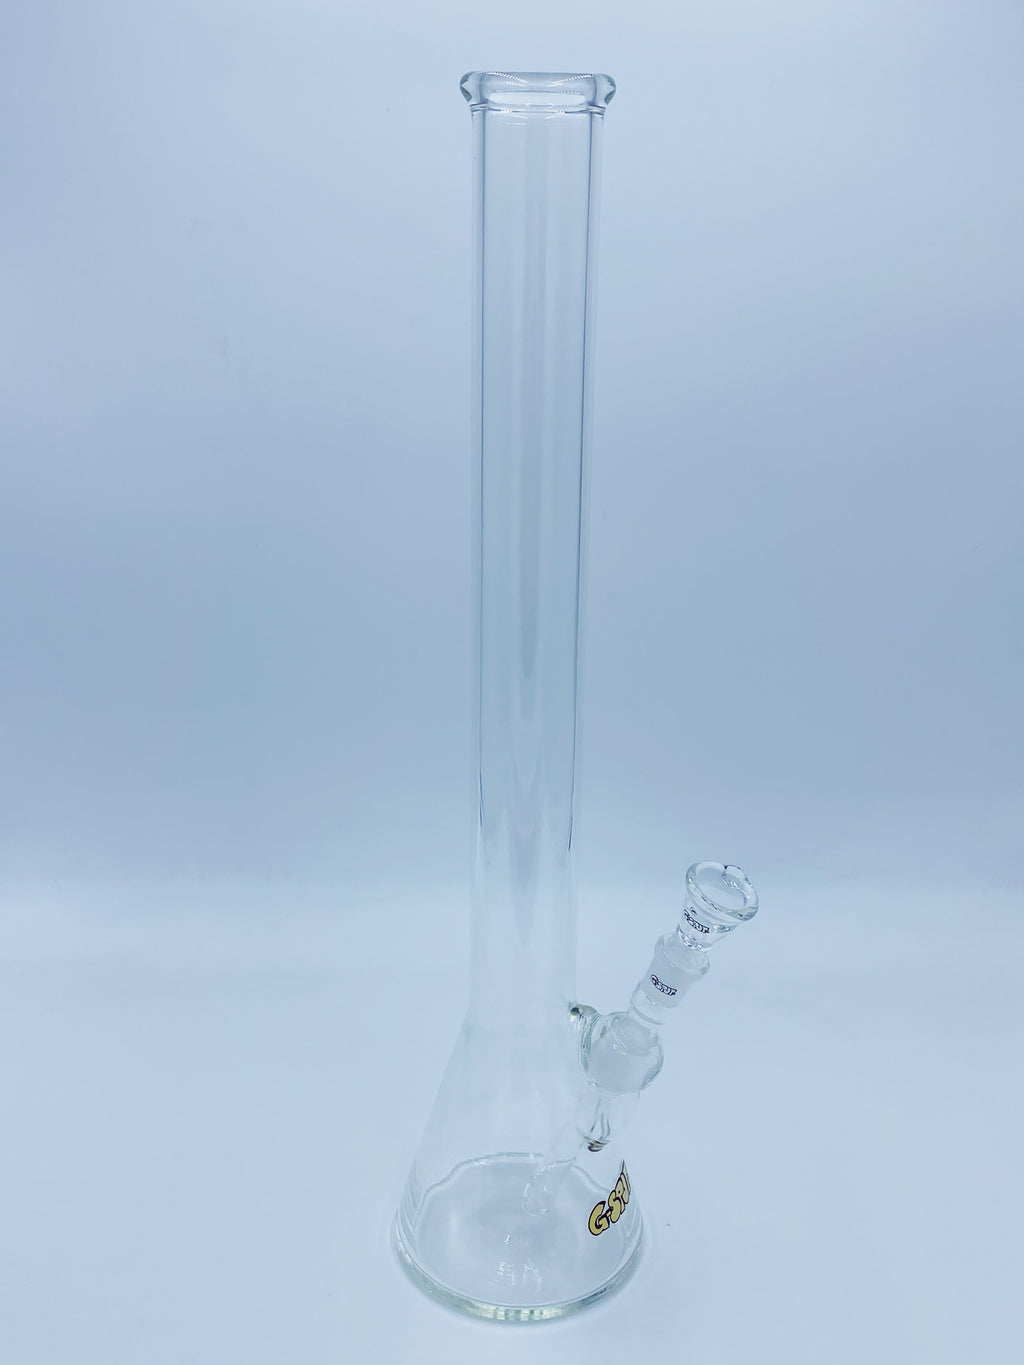 G SPOT 18 INCH BEAKER - Smoke Country - Land of the artistic glass blown bongs